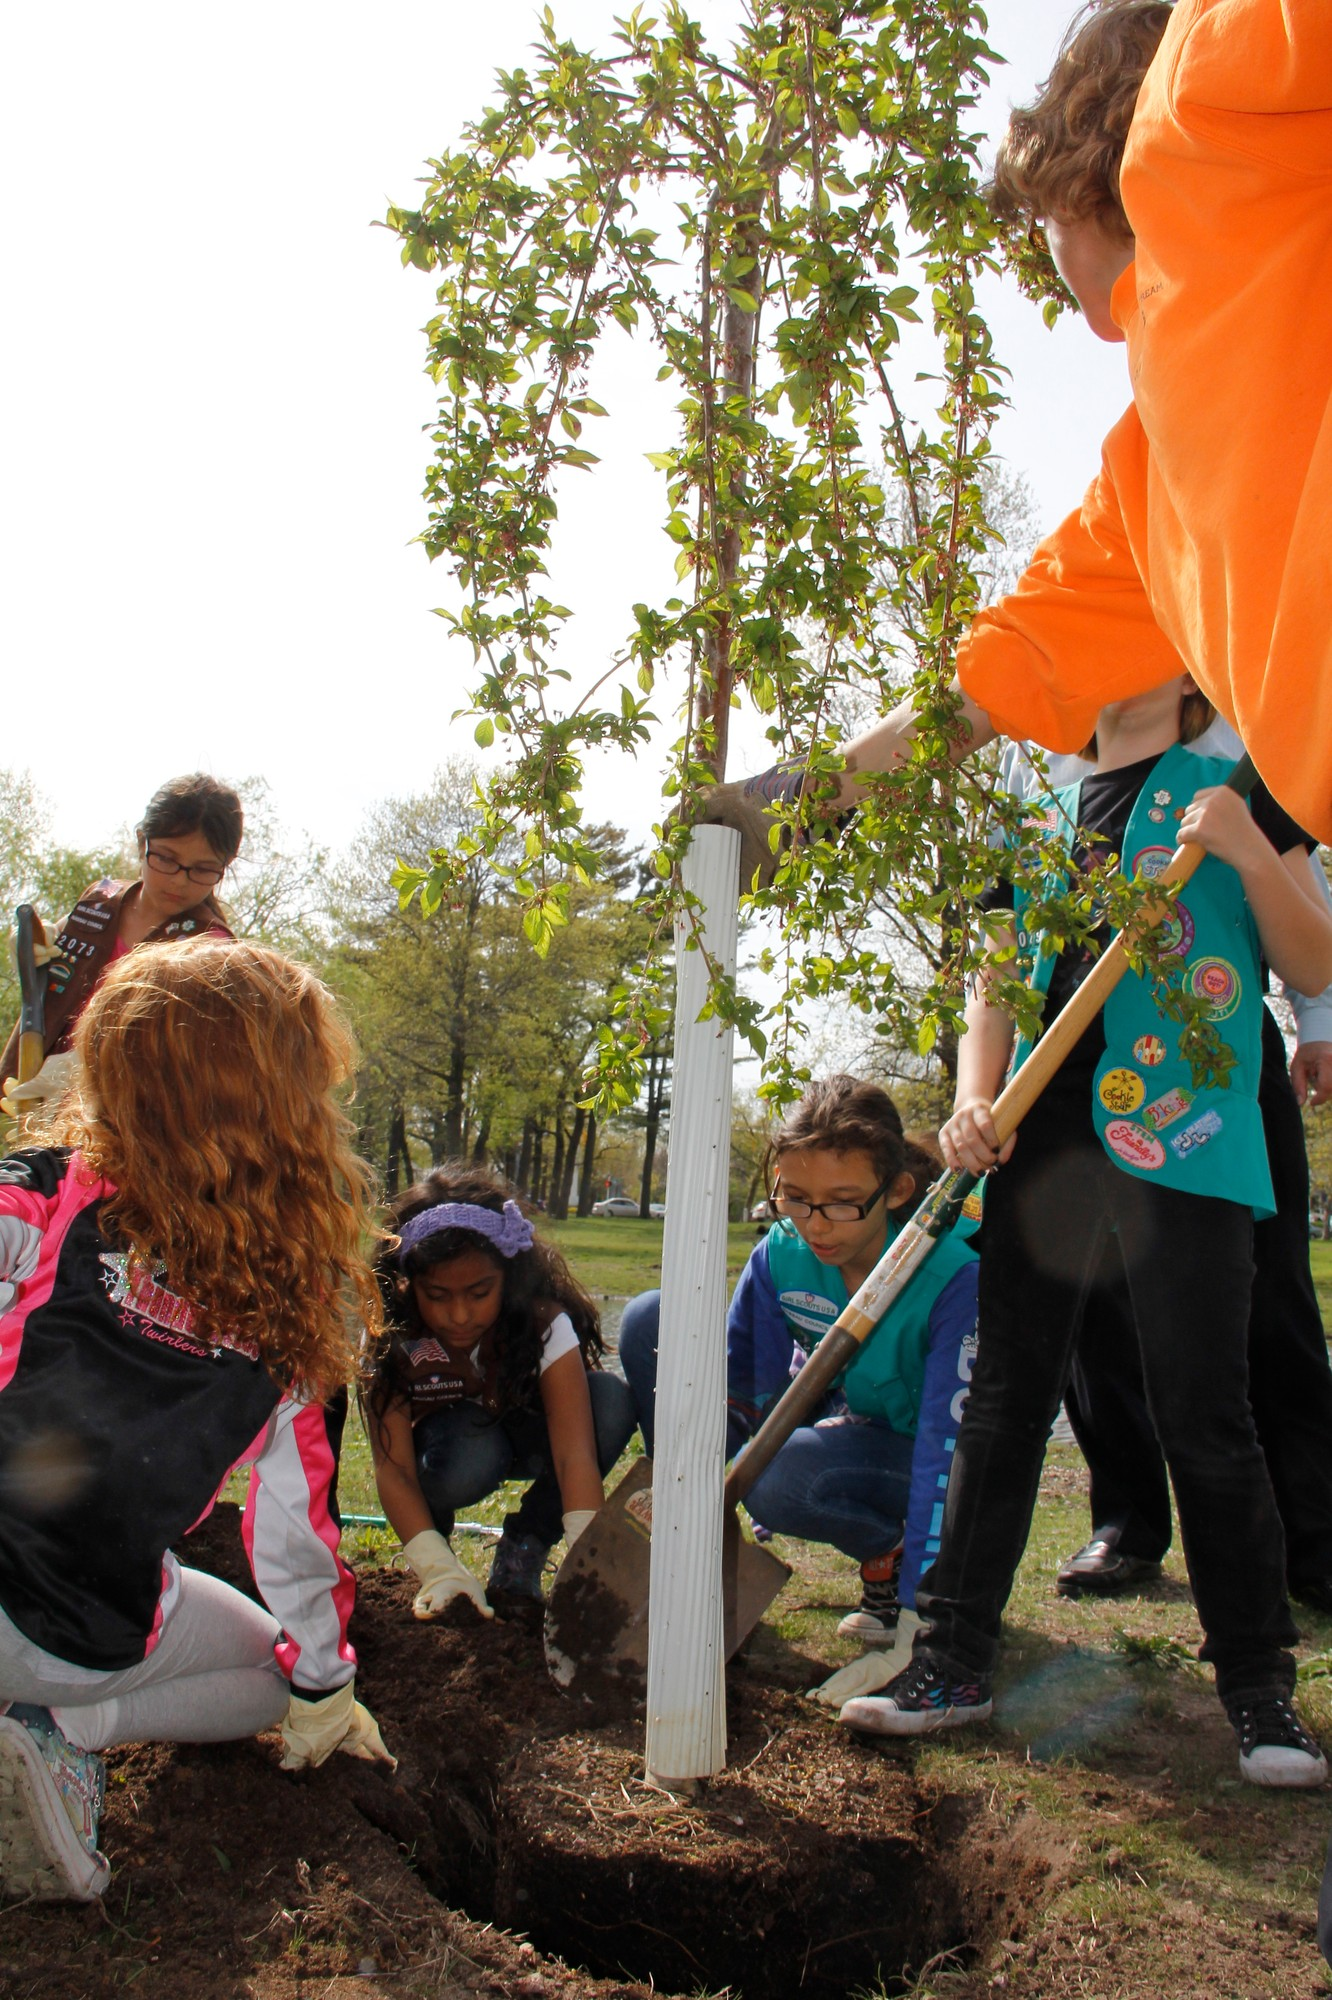 Girl ScouTs planted a new tree at Cahill Park with the help of the village Parks Department.